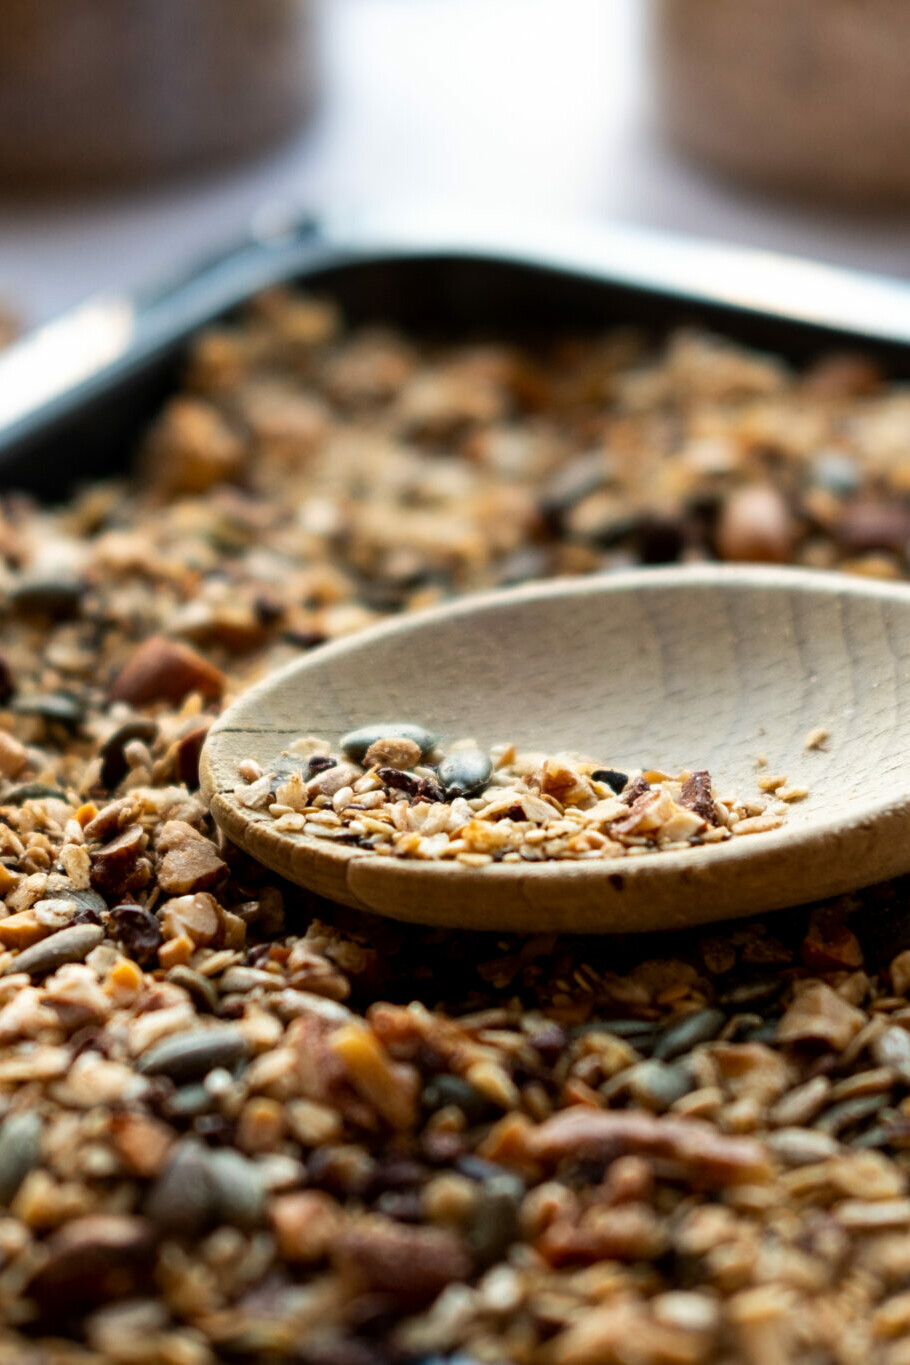 Chalo Homemade Granola package